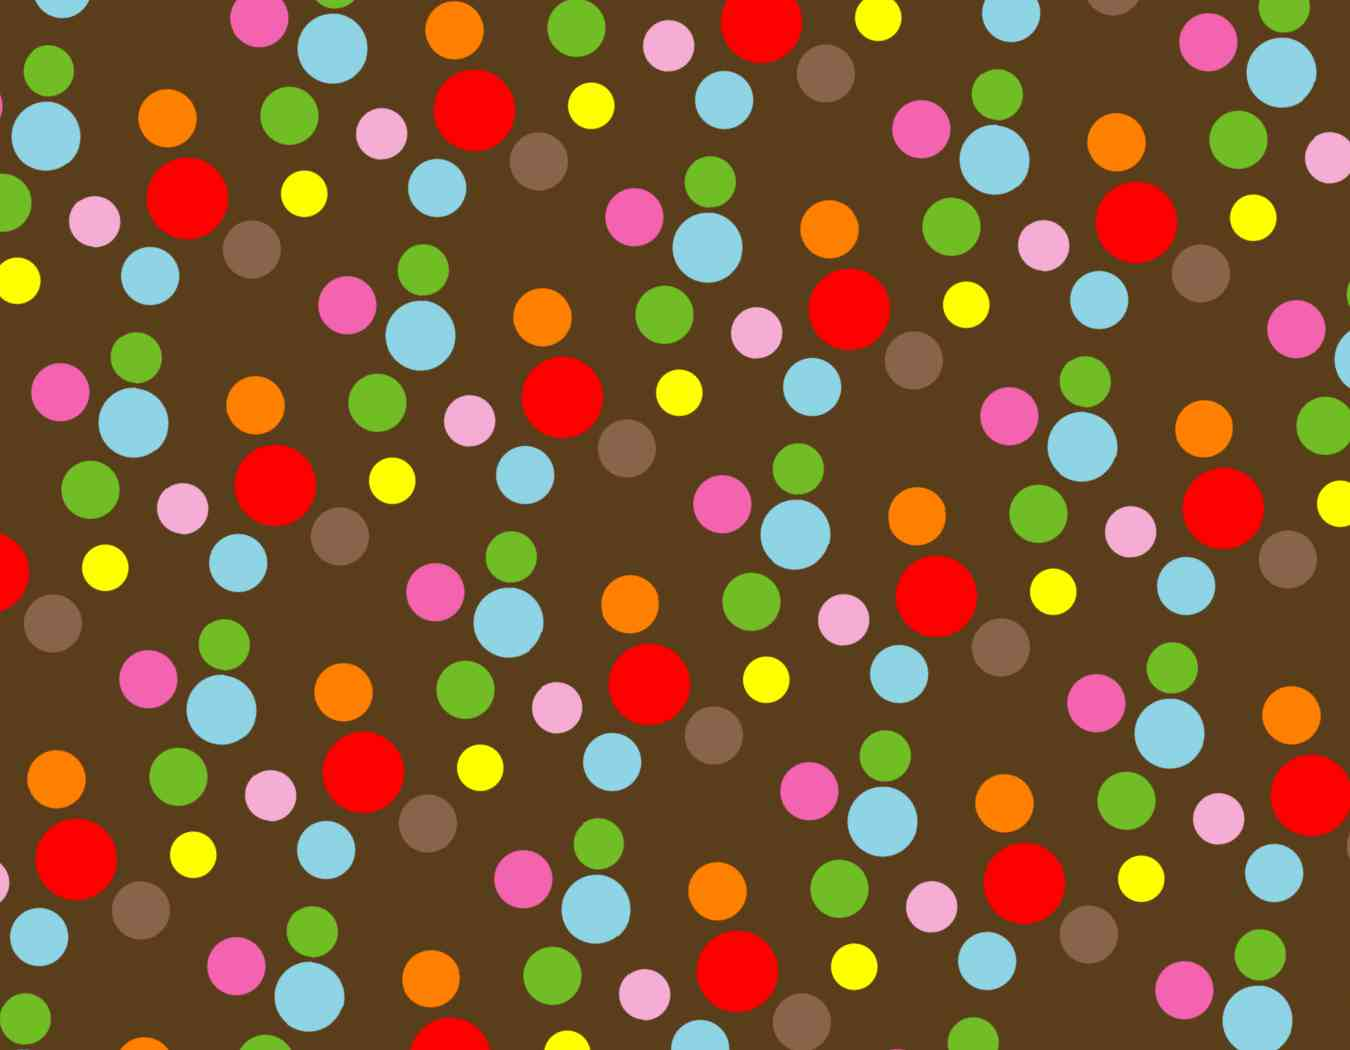 9in X 7in Assorted Color Polka Dots Vinyl Sticker Sheet